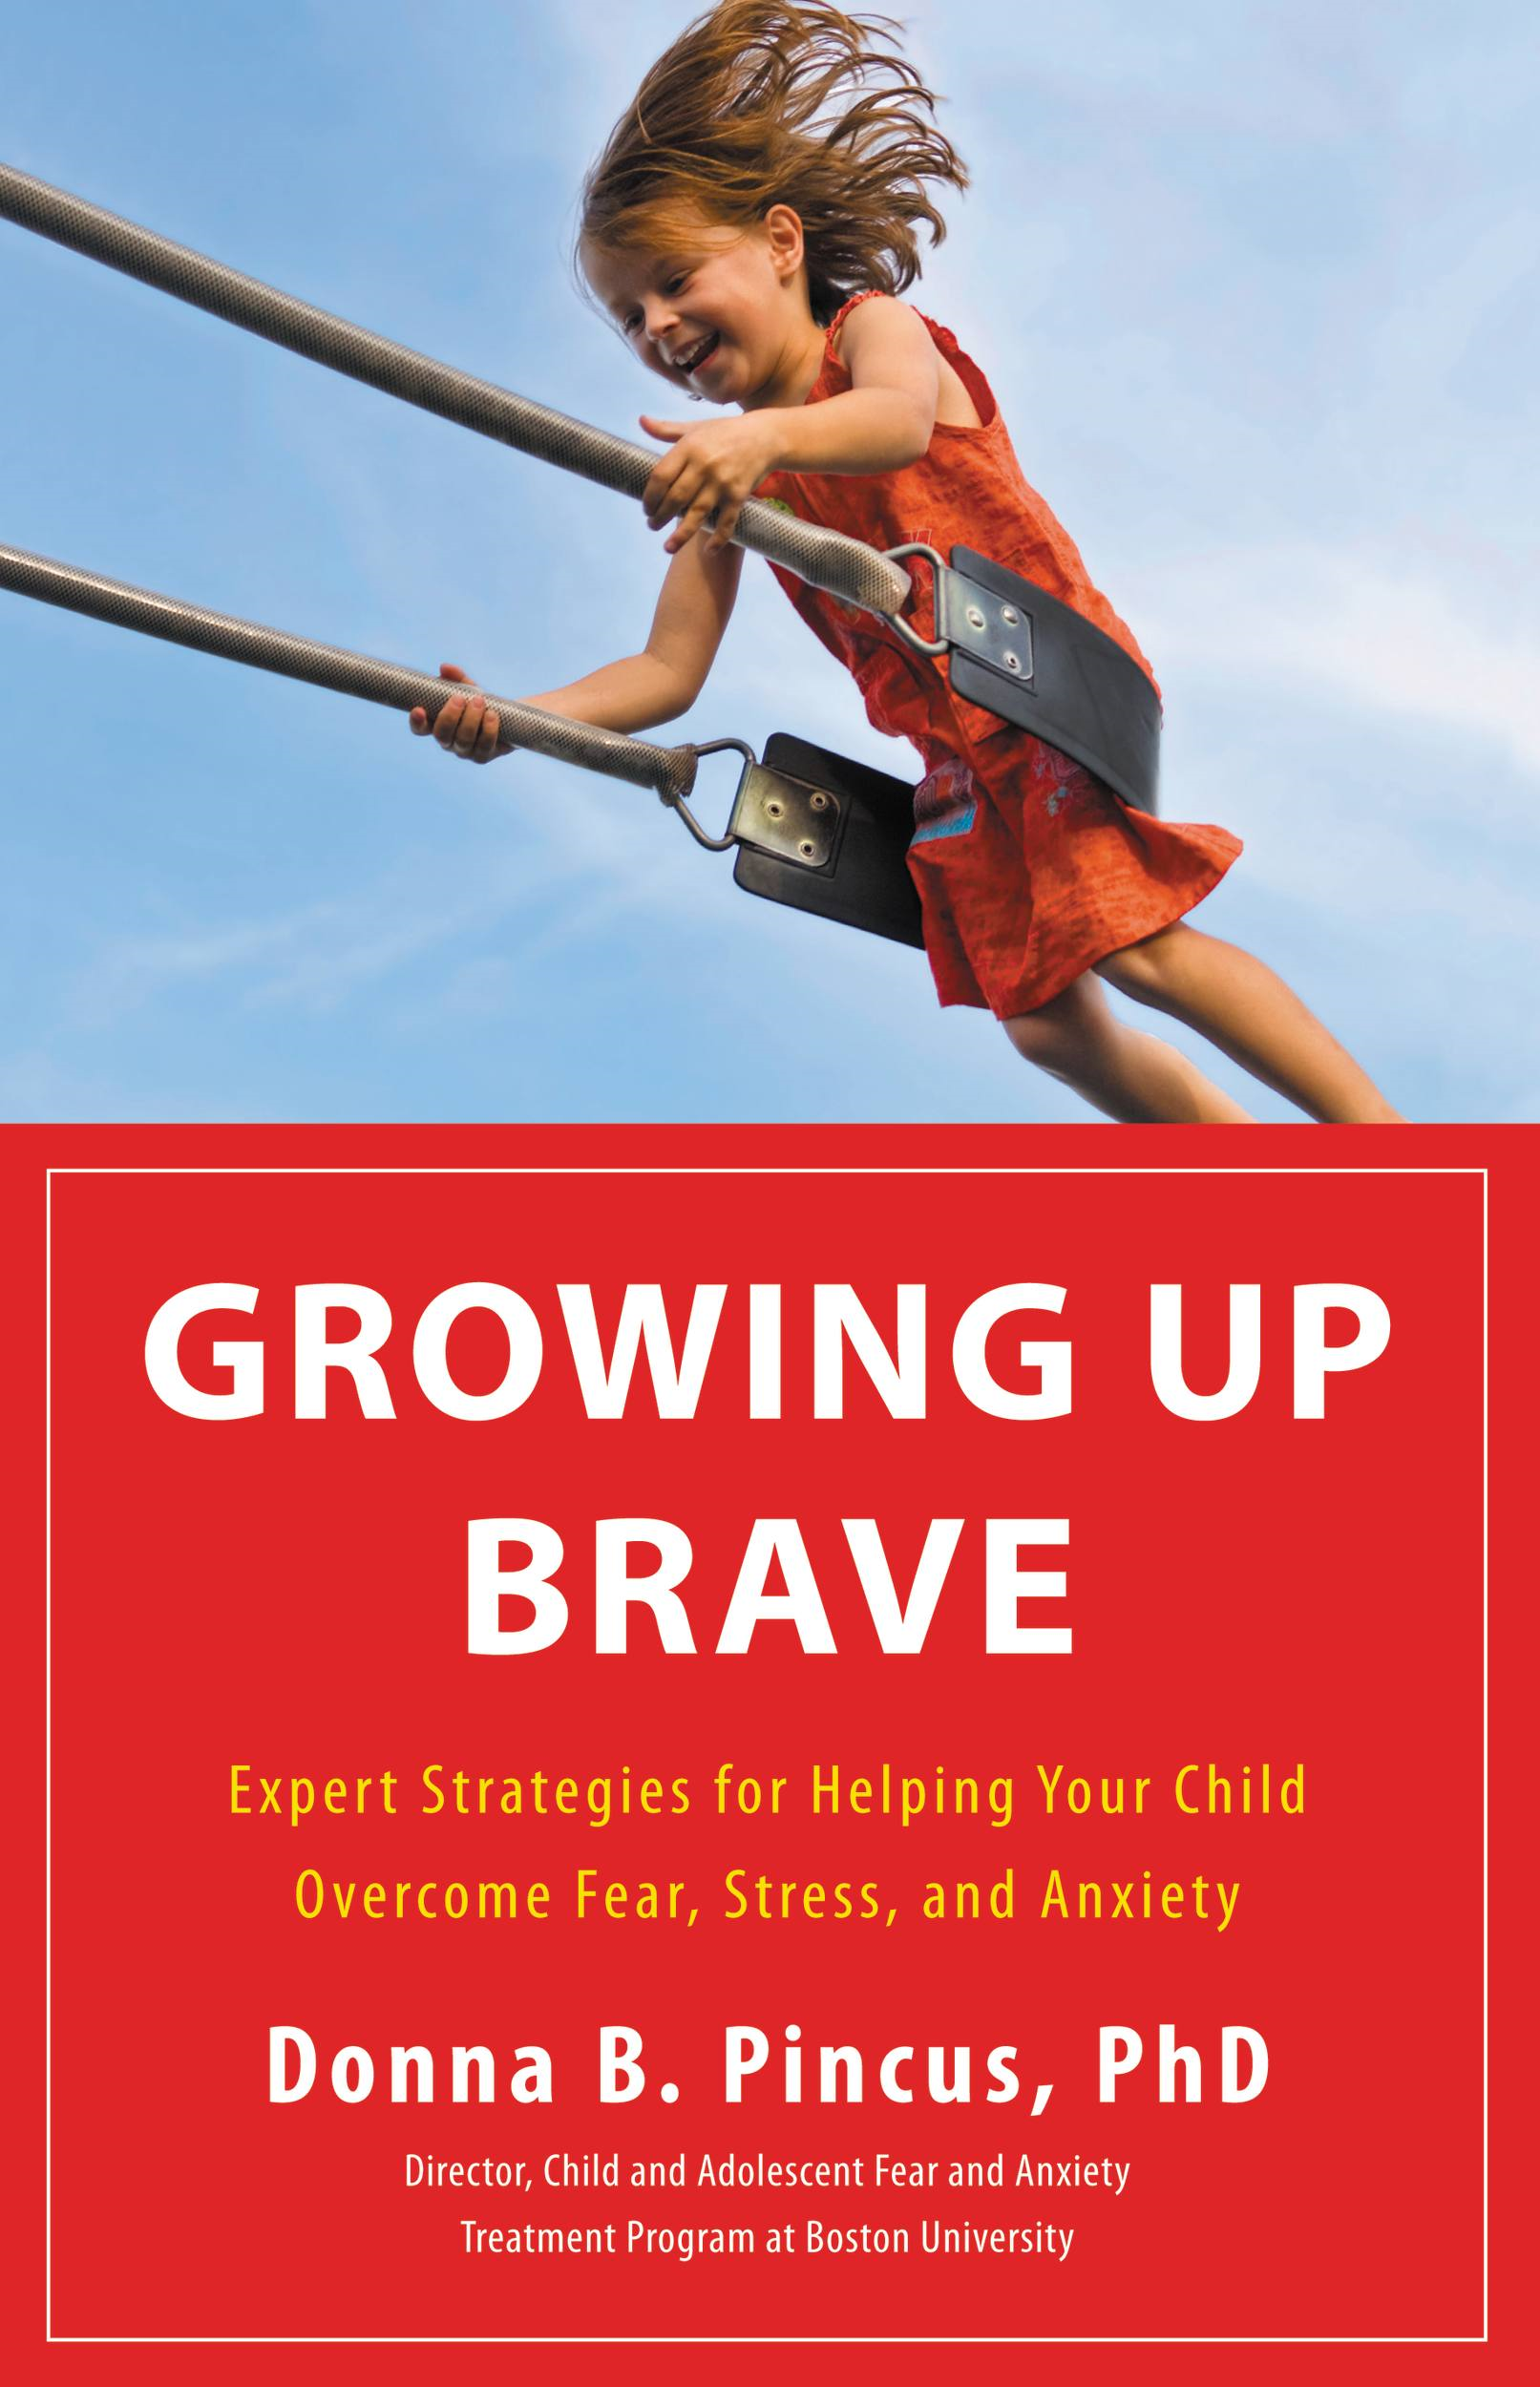 Growing Up Brave By: Donna B. Pincus